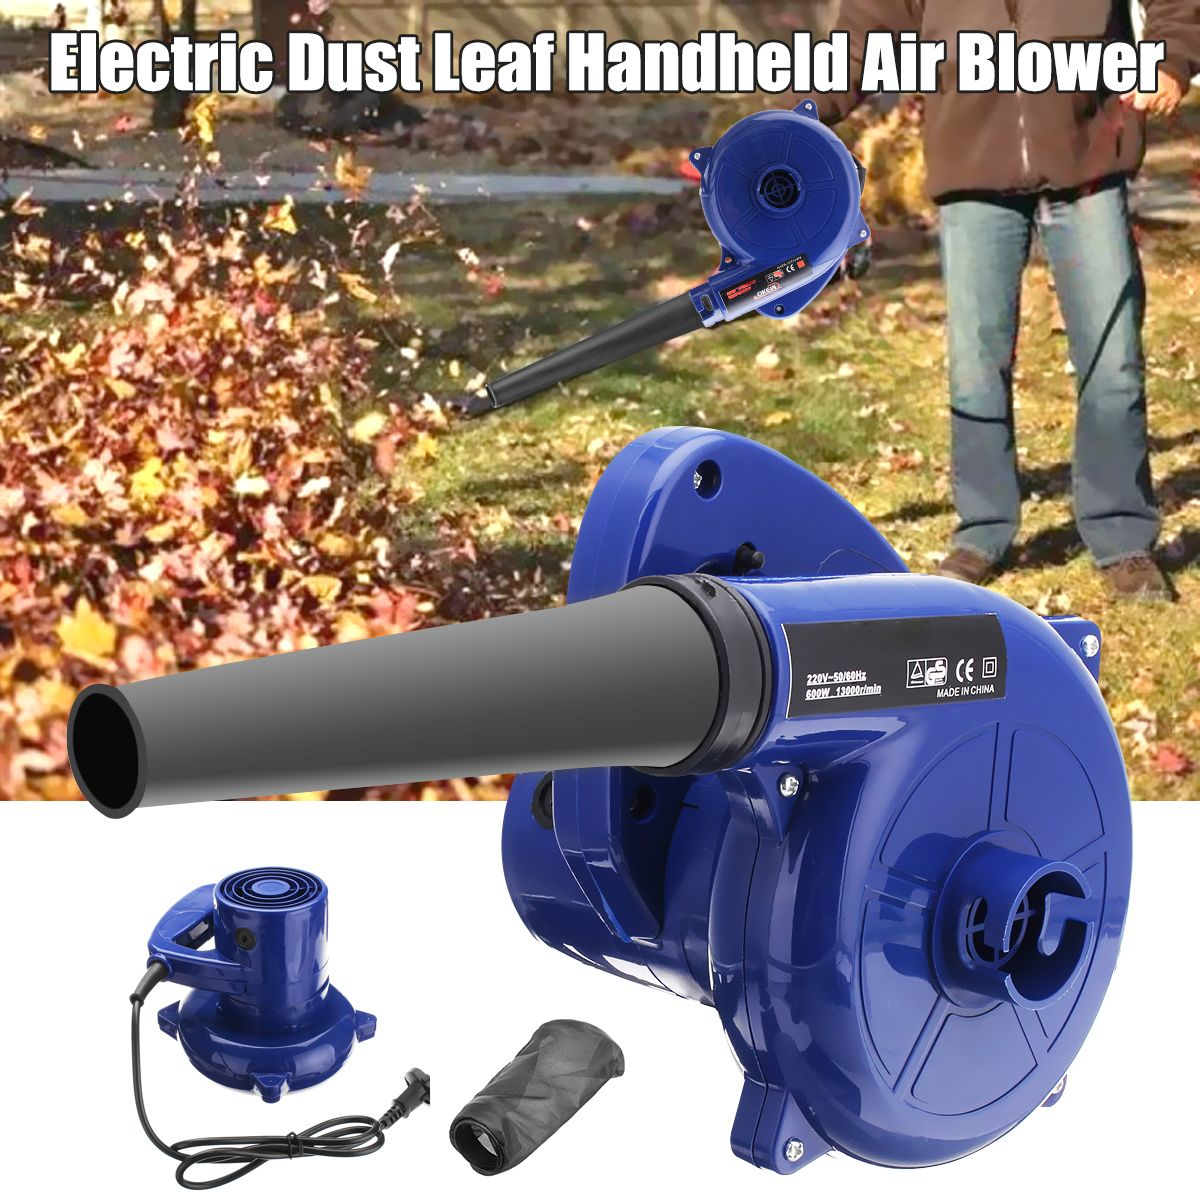 600W 220V Electric Handheld Air Blower Computer Dust Collector Fan Vacuum Cleaner Dust Collecting Leaf Blowing Remover